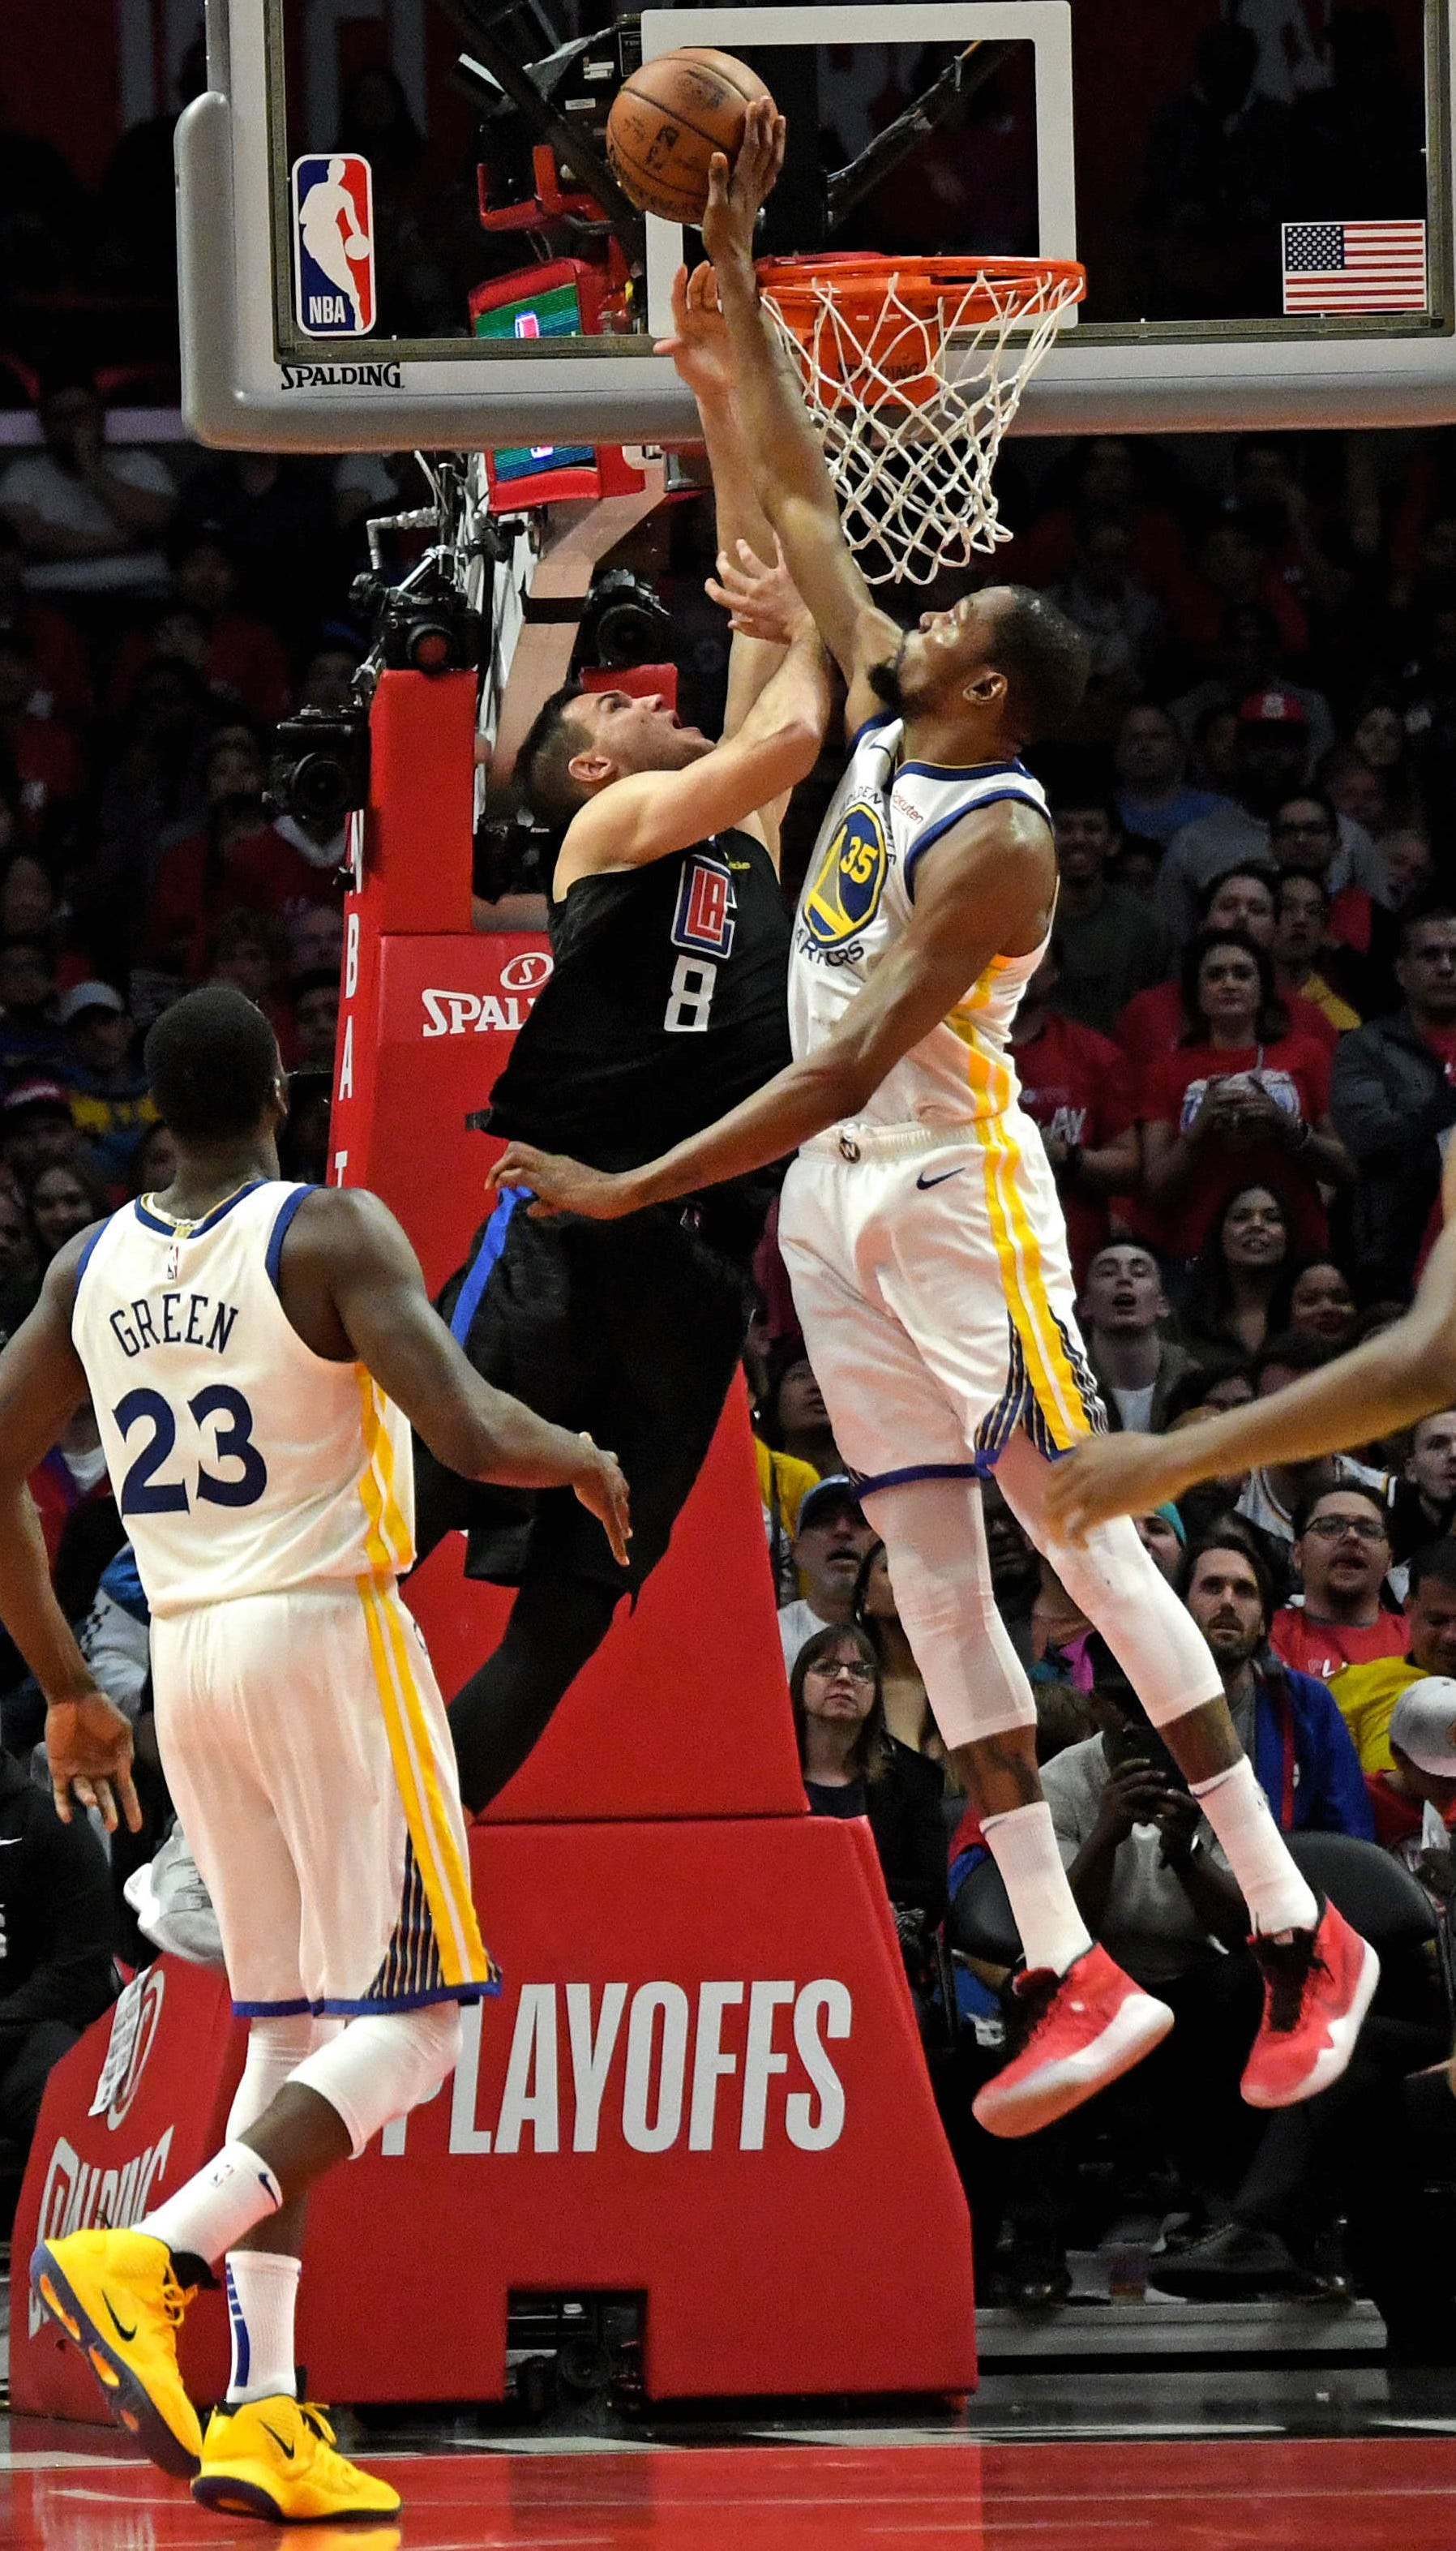 April 26: The Golden State Warriors' Kevin Durant blocks the shot from the LA Clippers' Danilo Gallinari at the net during Game 6 at Staples Center. The Warriors defeated the Clippers 129-110 to win the series 4-2.